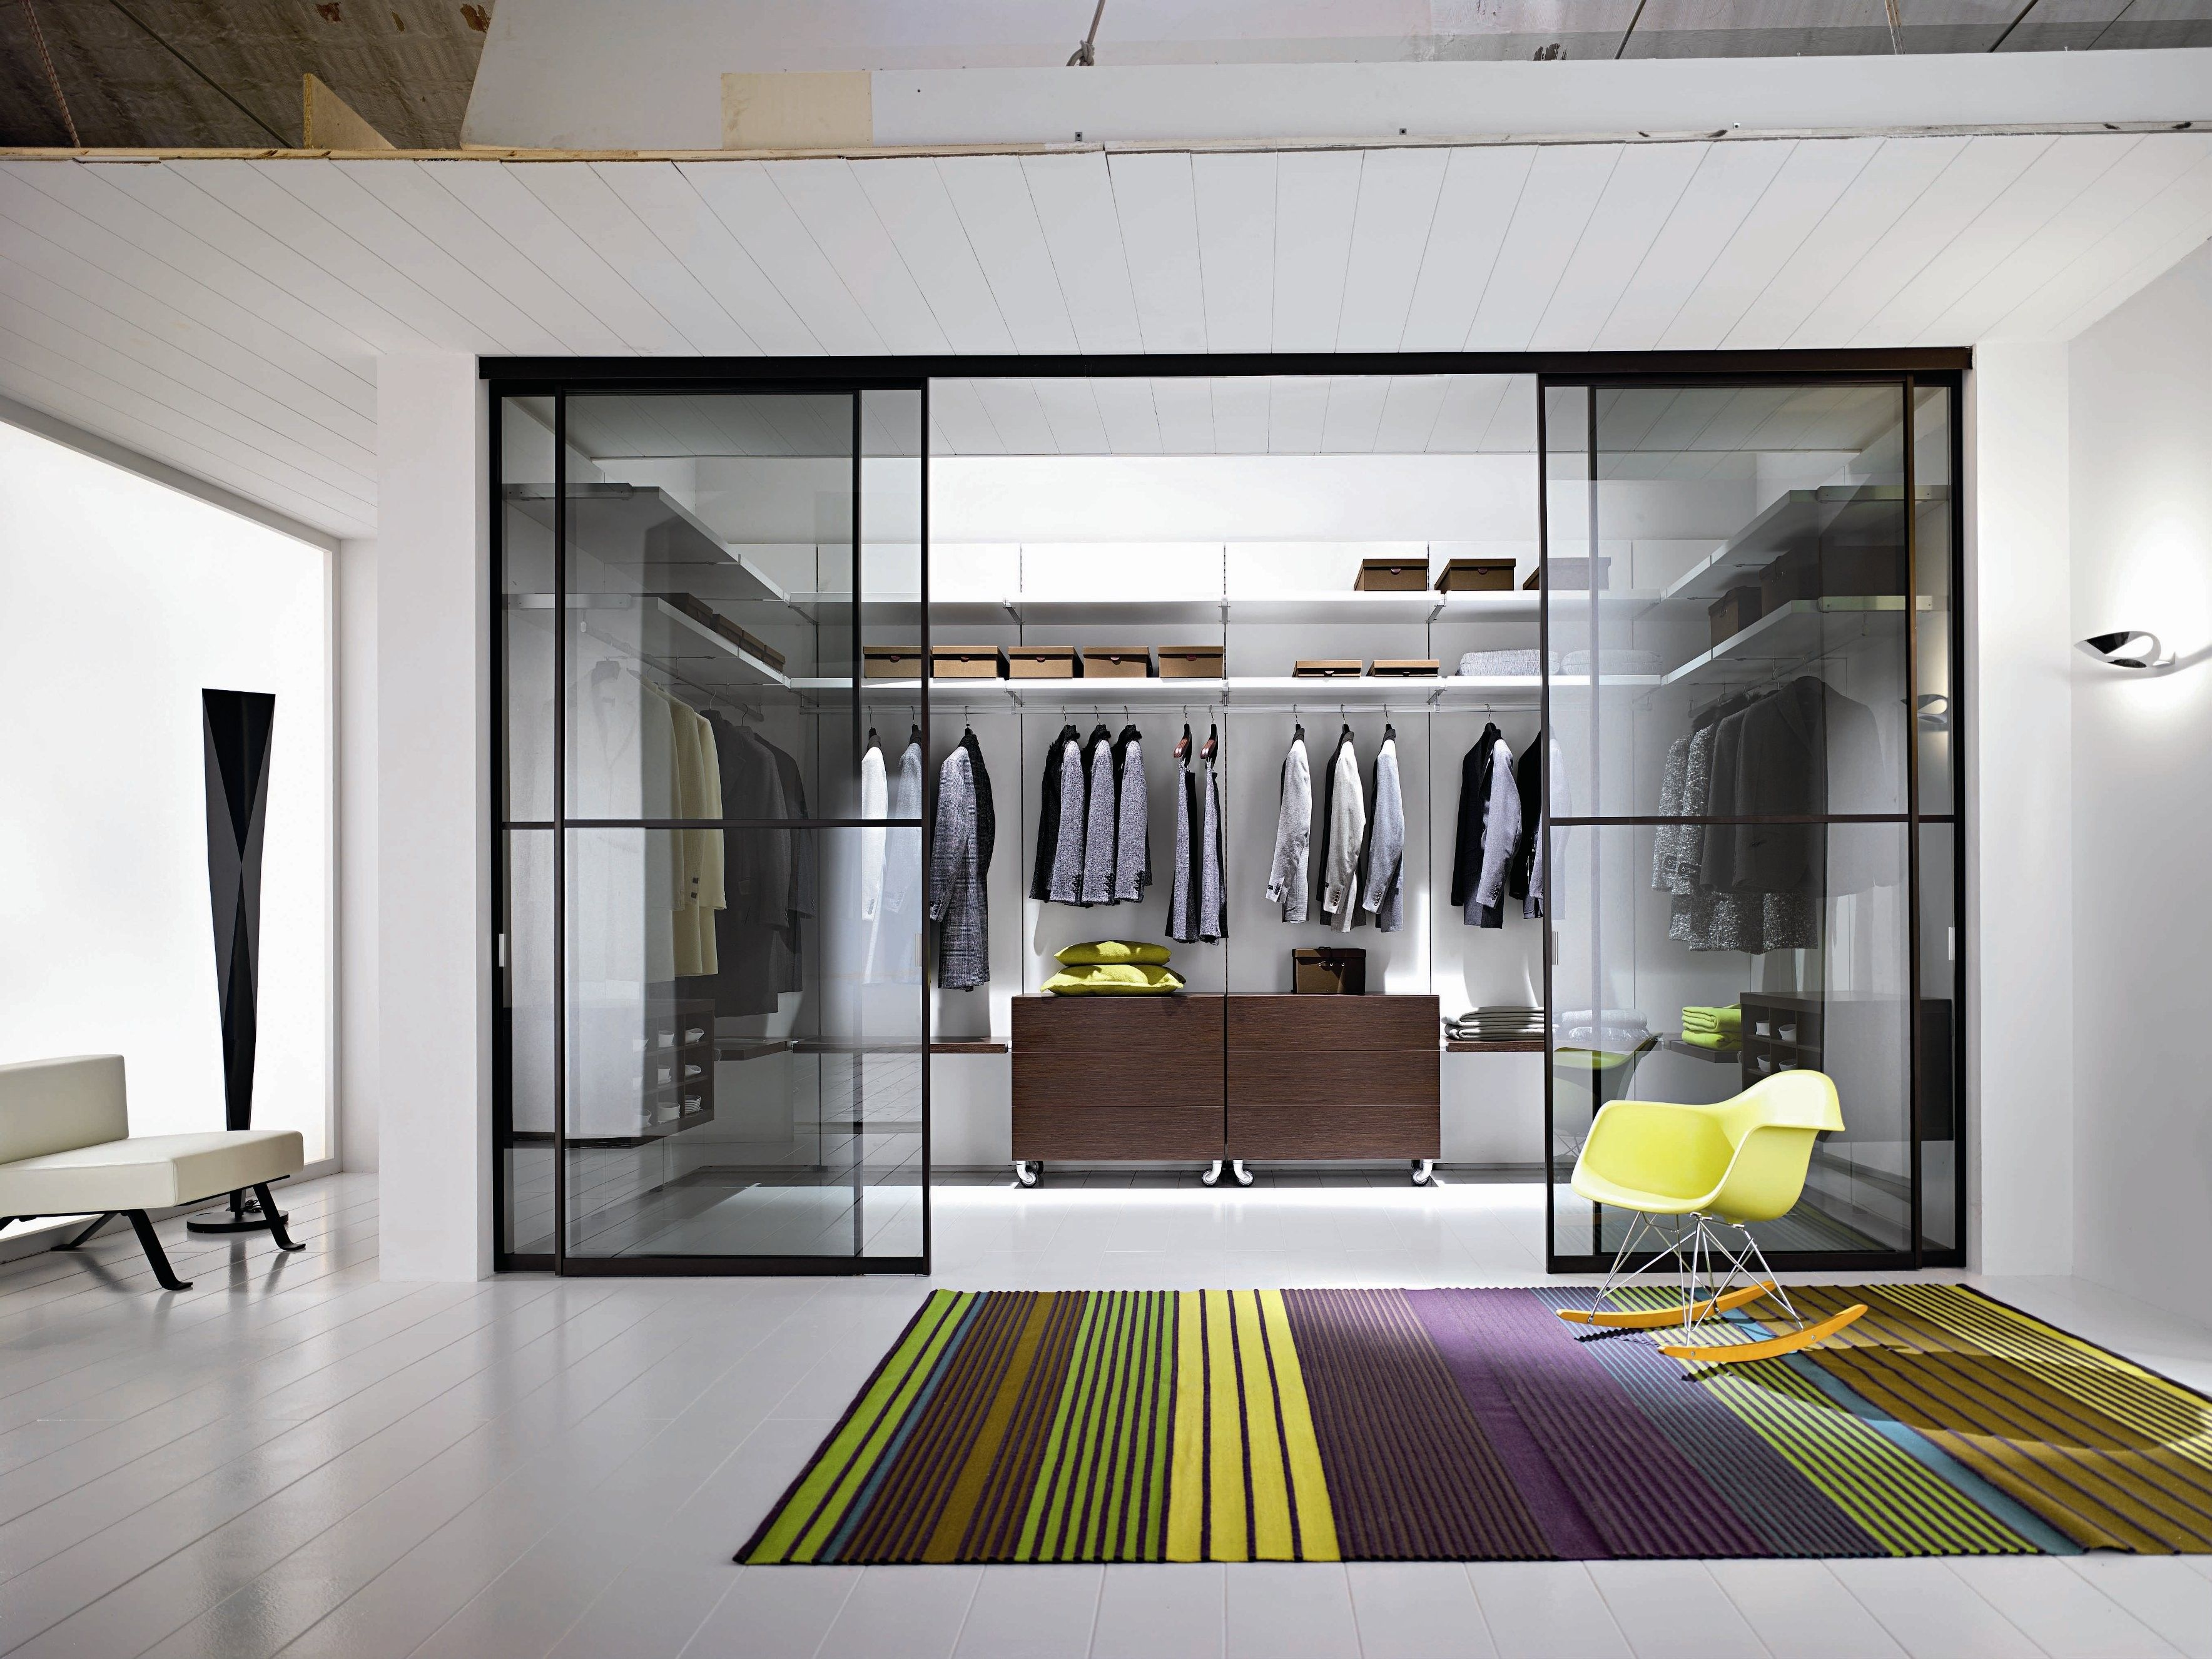 Exceptional #wardrobes #closet #armoire Storage, Hardware, Accessories For Wardrobes,  Dressing Room